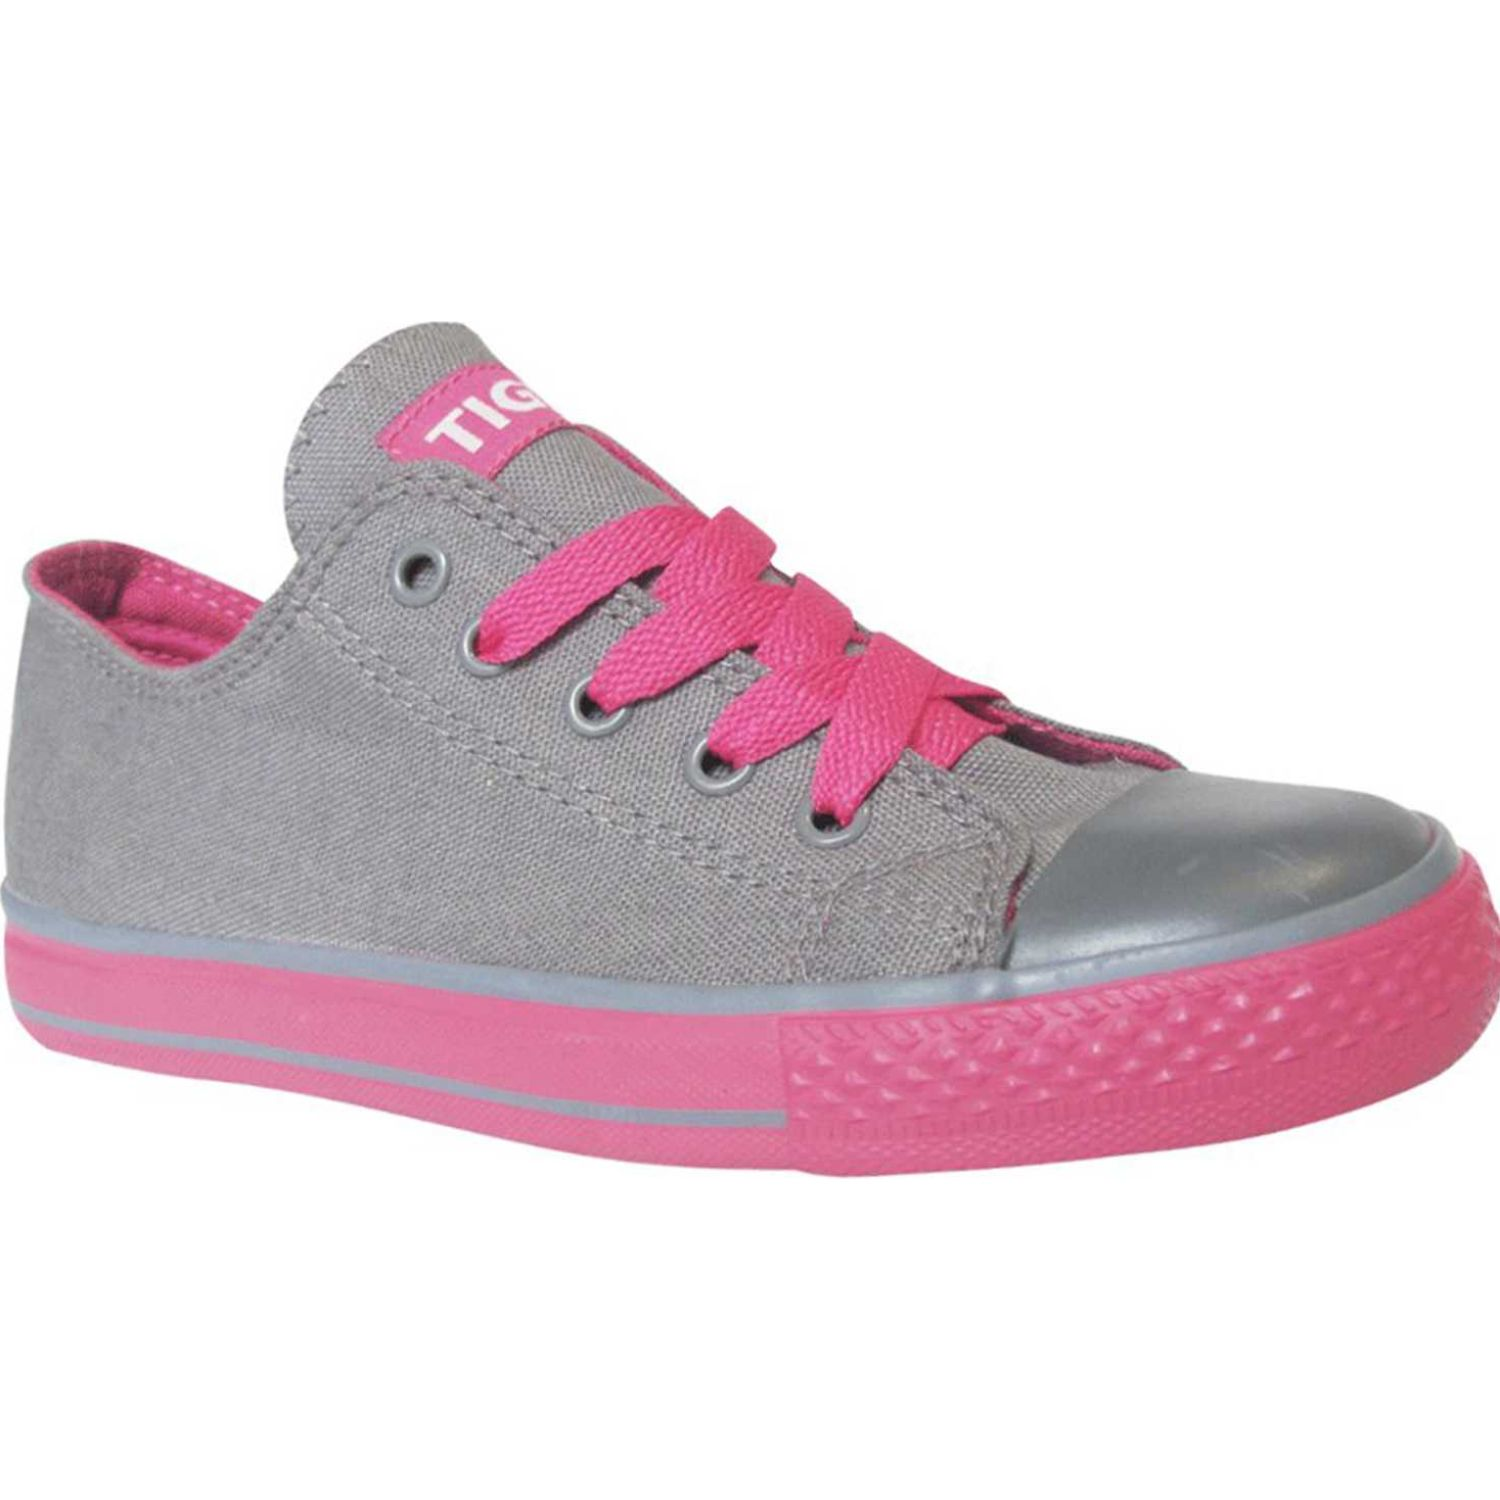 Tigre URBANAS COLOR Gris / fucsia Walking